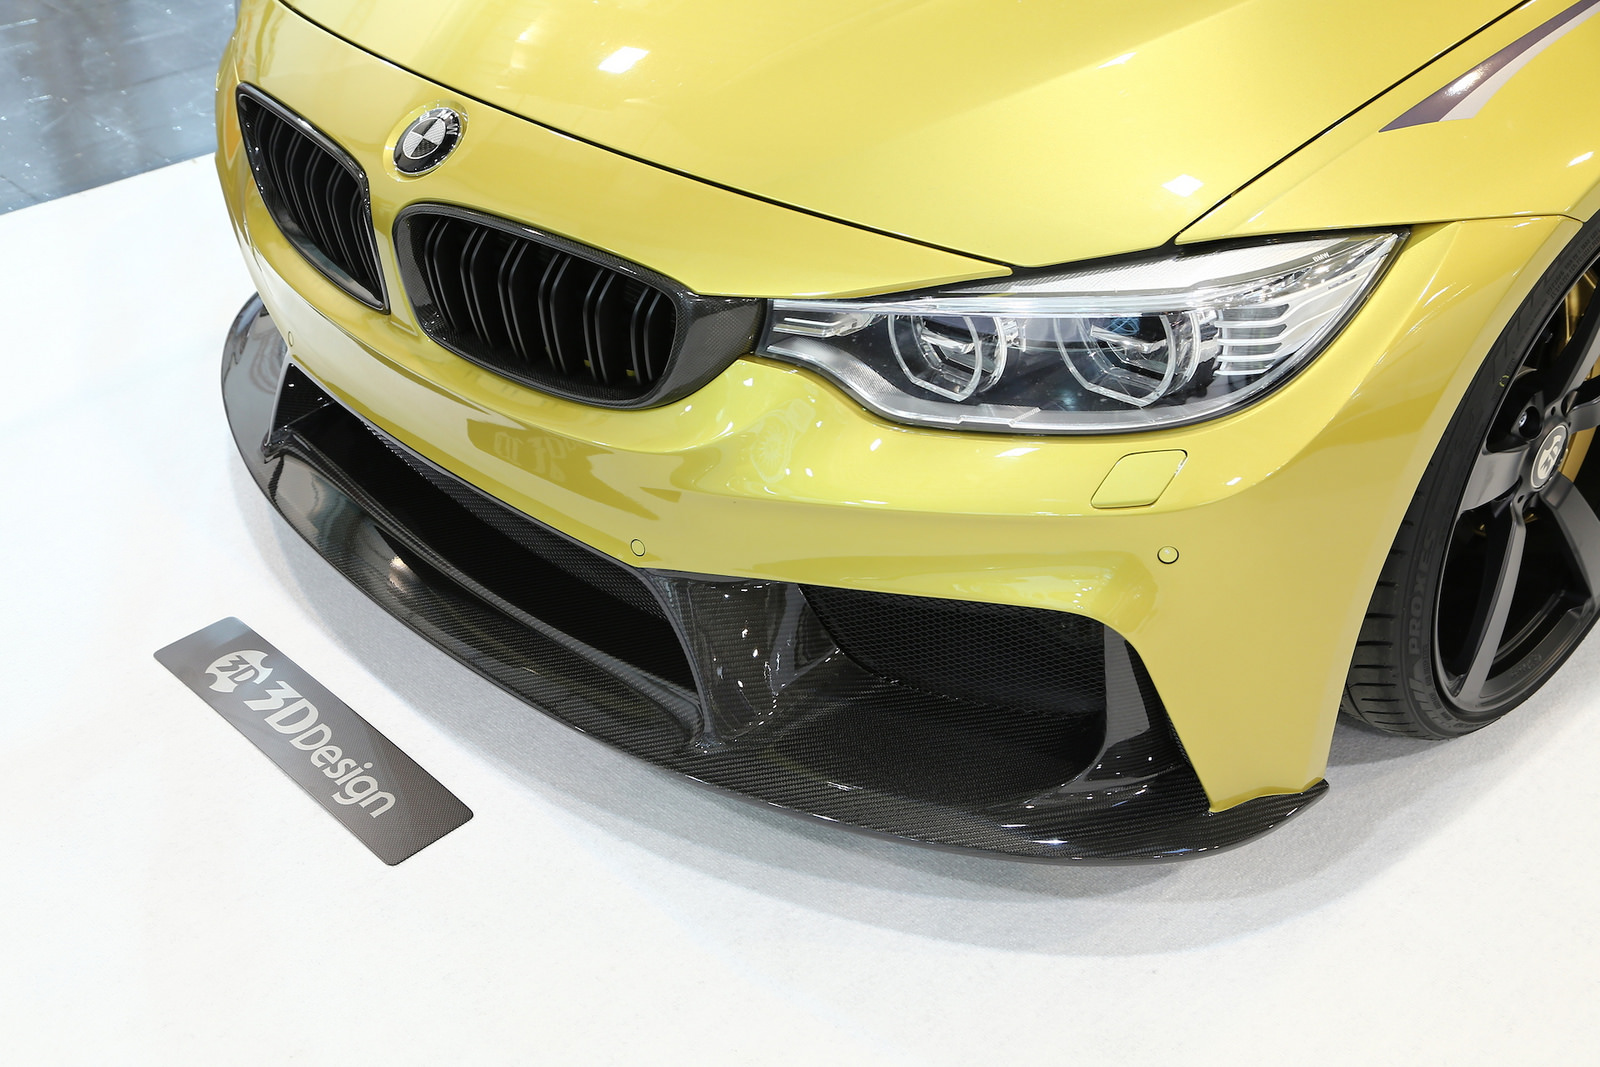 Preview Of The New F8x M3 M4 3d Design Front And Rear Bumpers